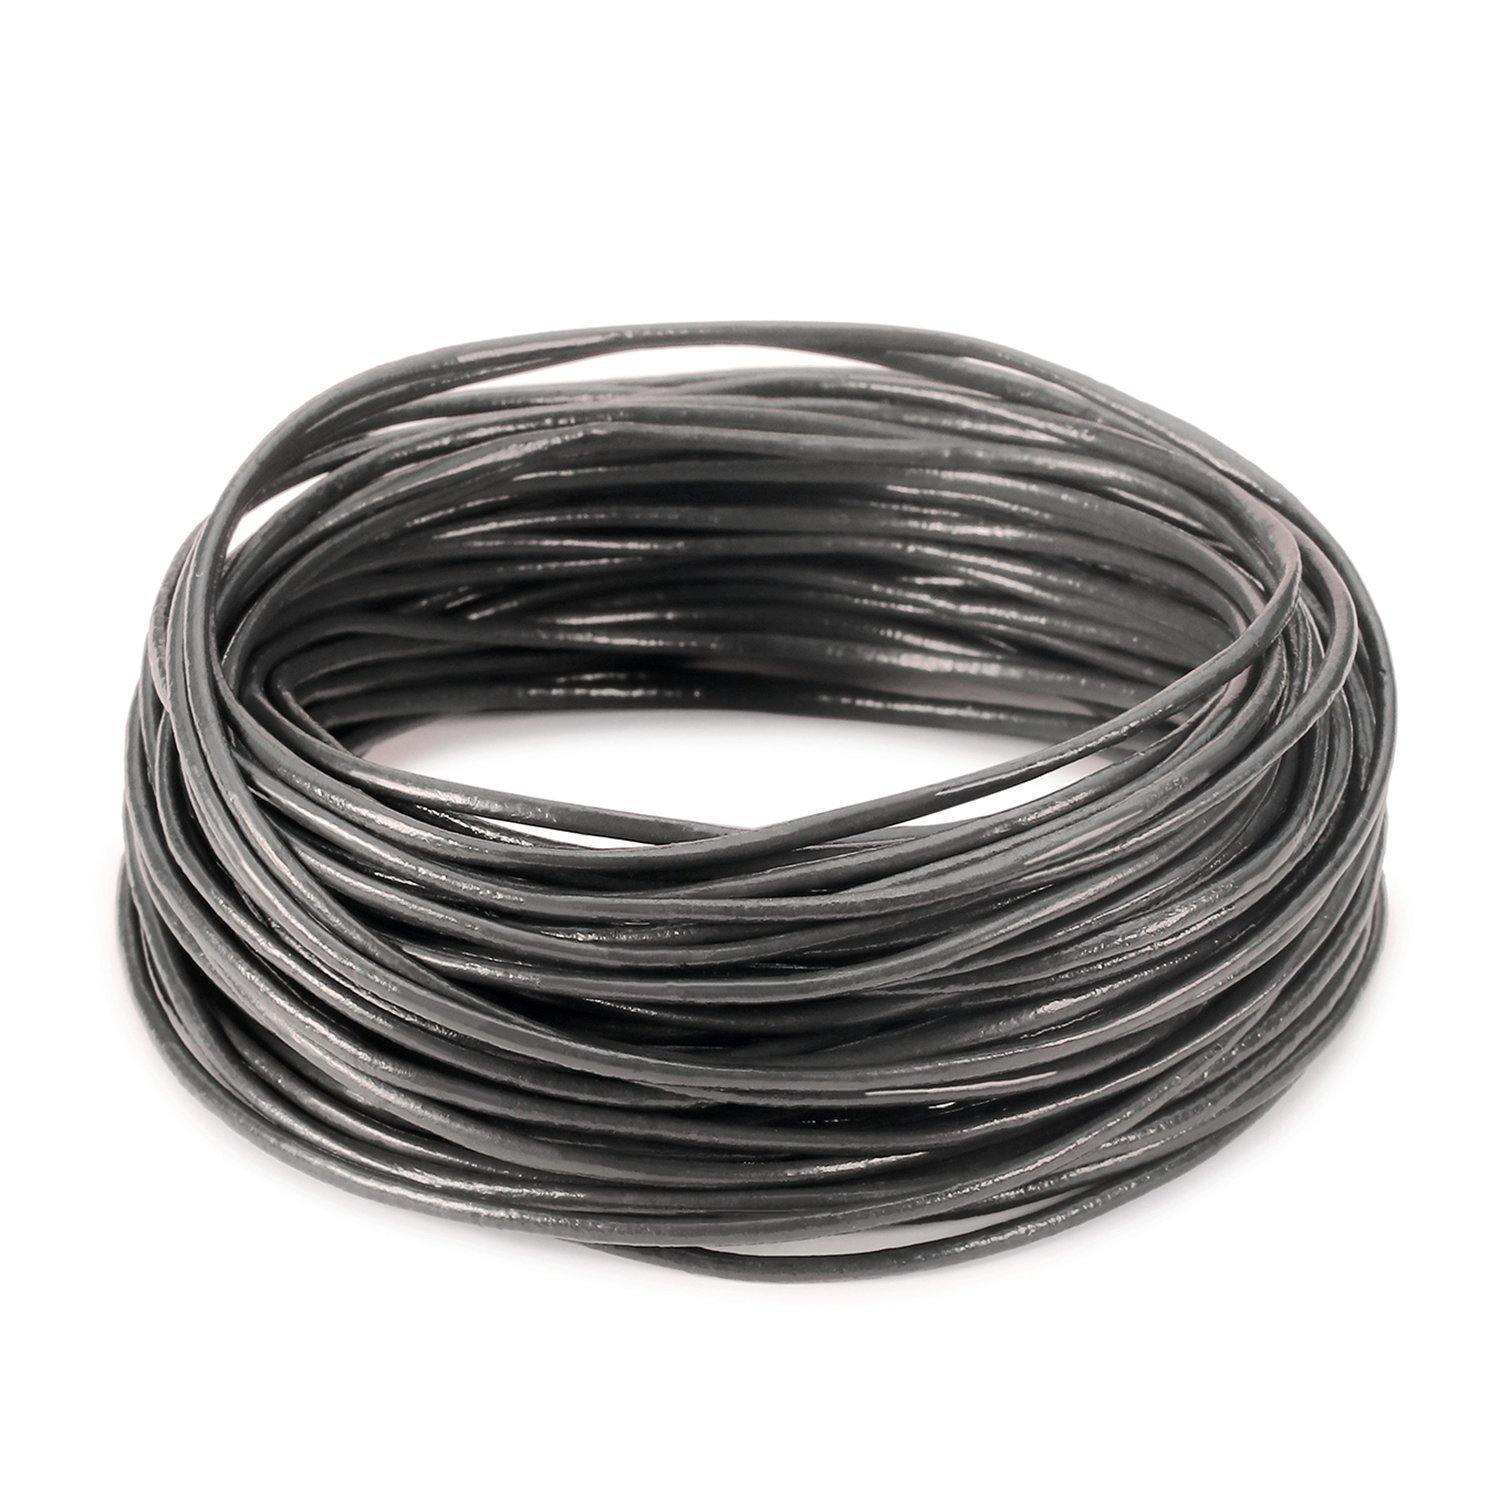 BeadsTreasure 15 Ft of Dark Gray Genuine Leather Cord Round 2 mm Diameter. 082045210309 4336861935